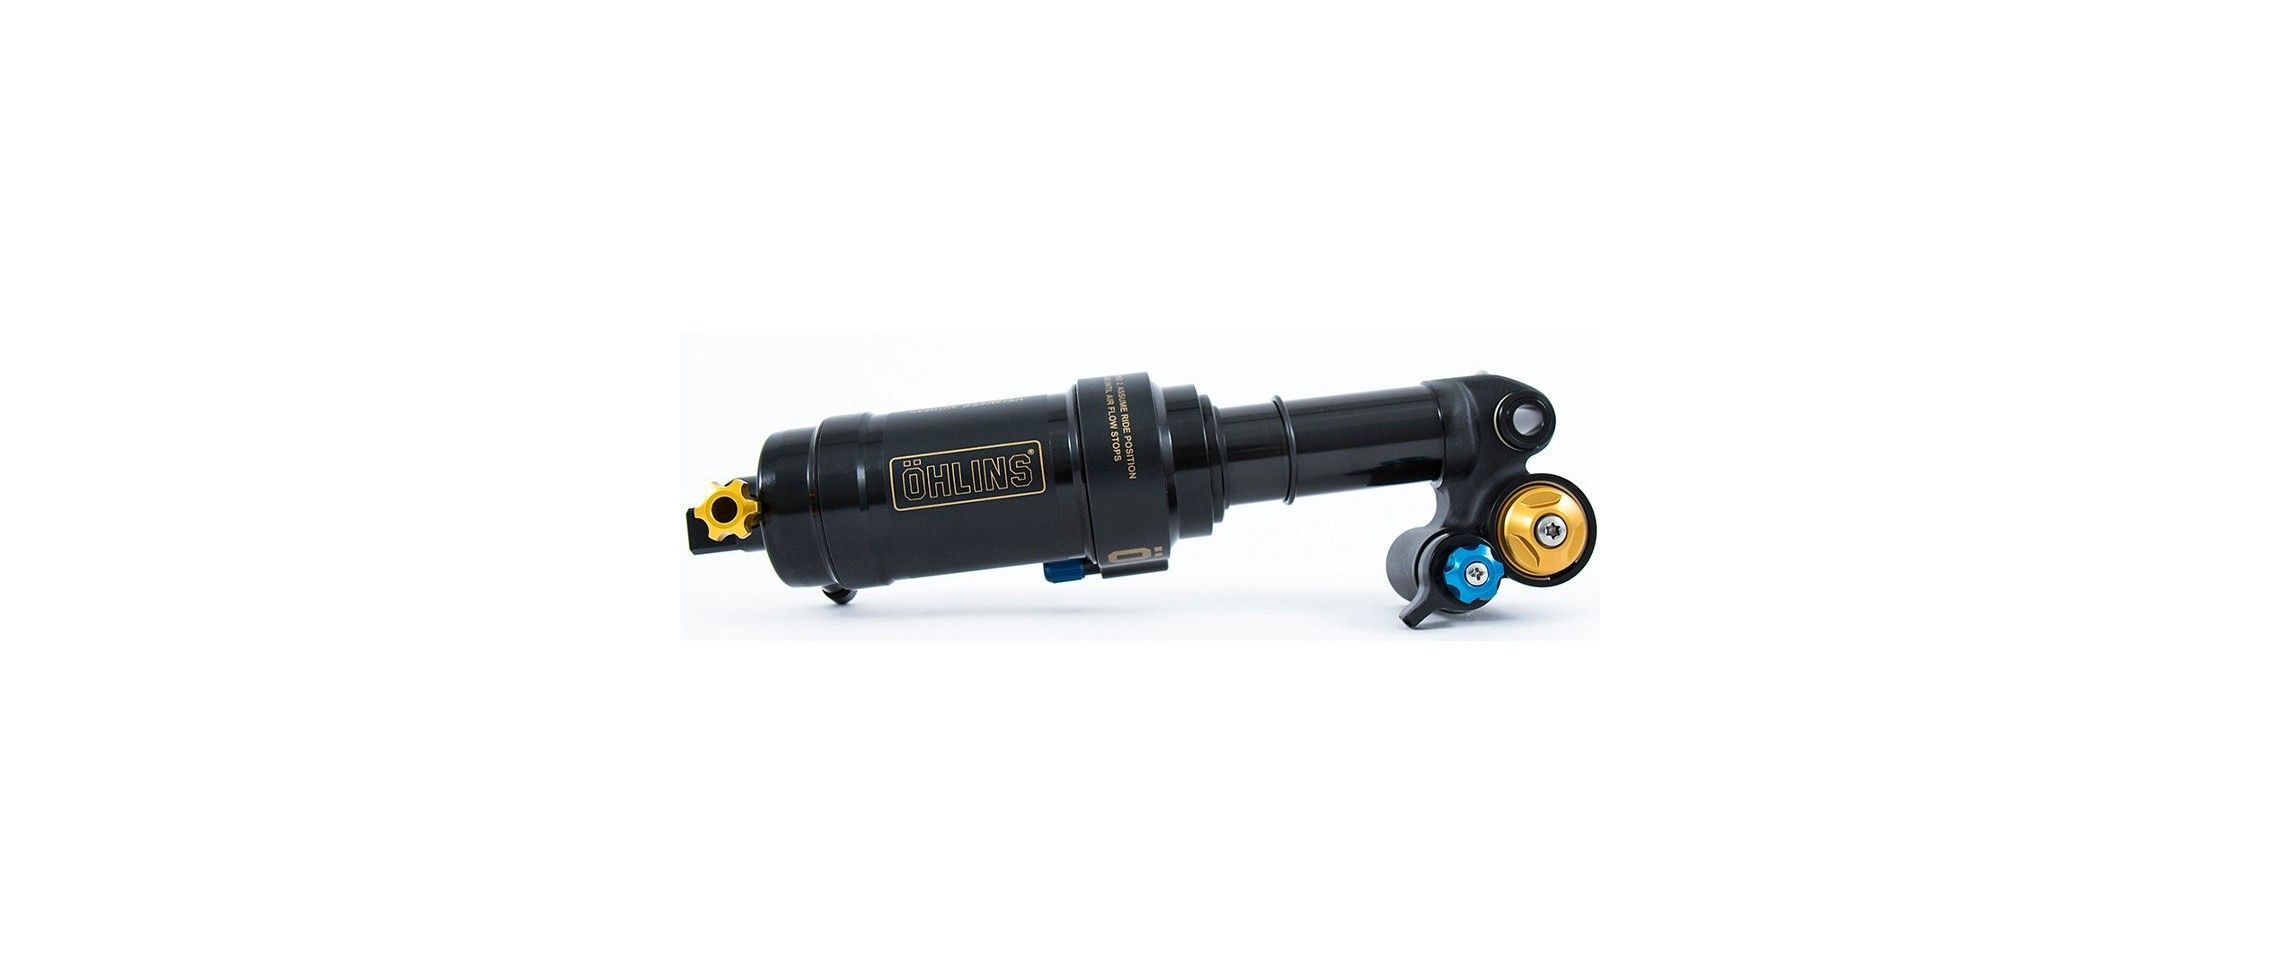 OHLINS 650B STX 22 AM AIR SHOCK FOR ENDURO SBC 1566